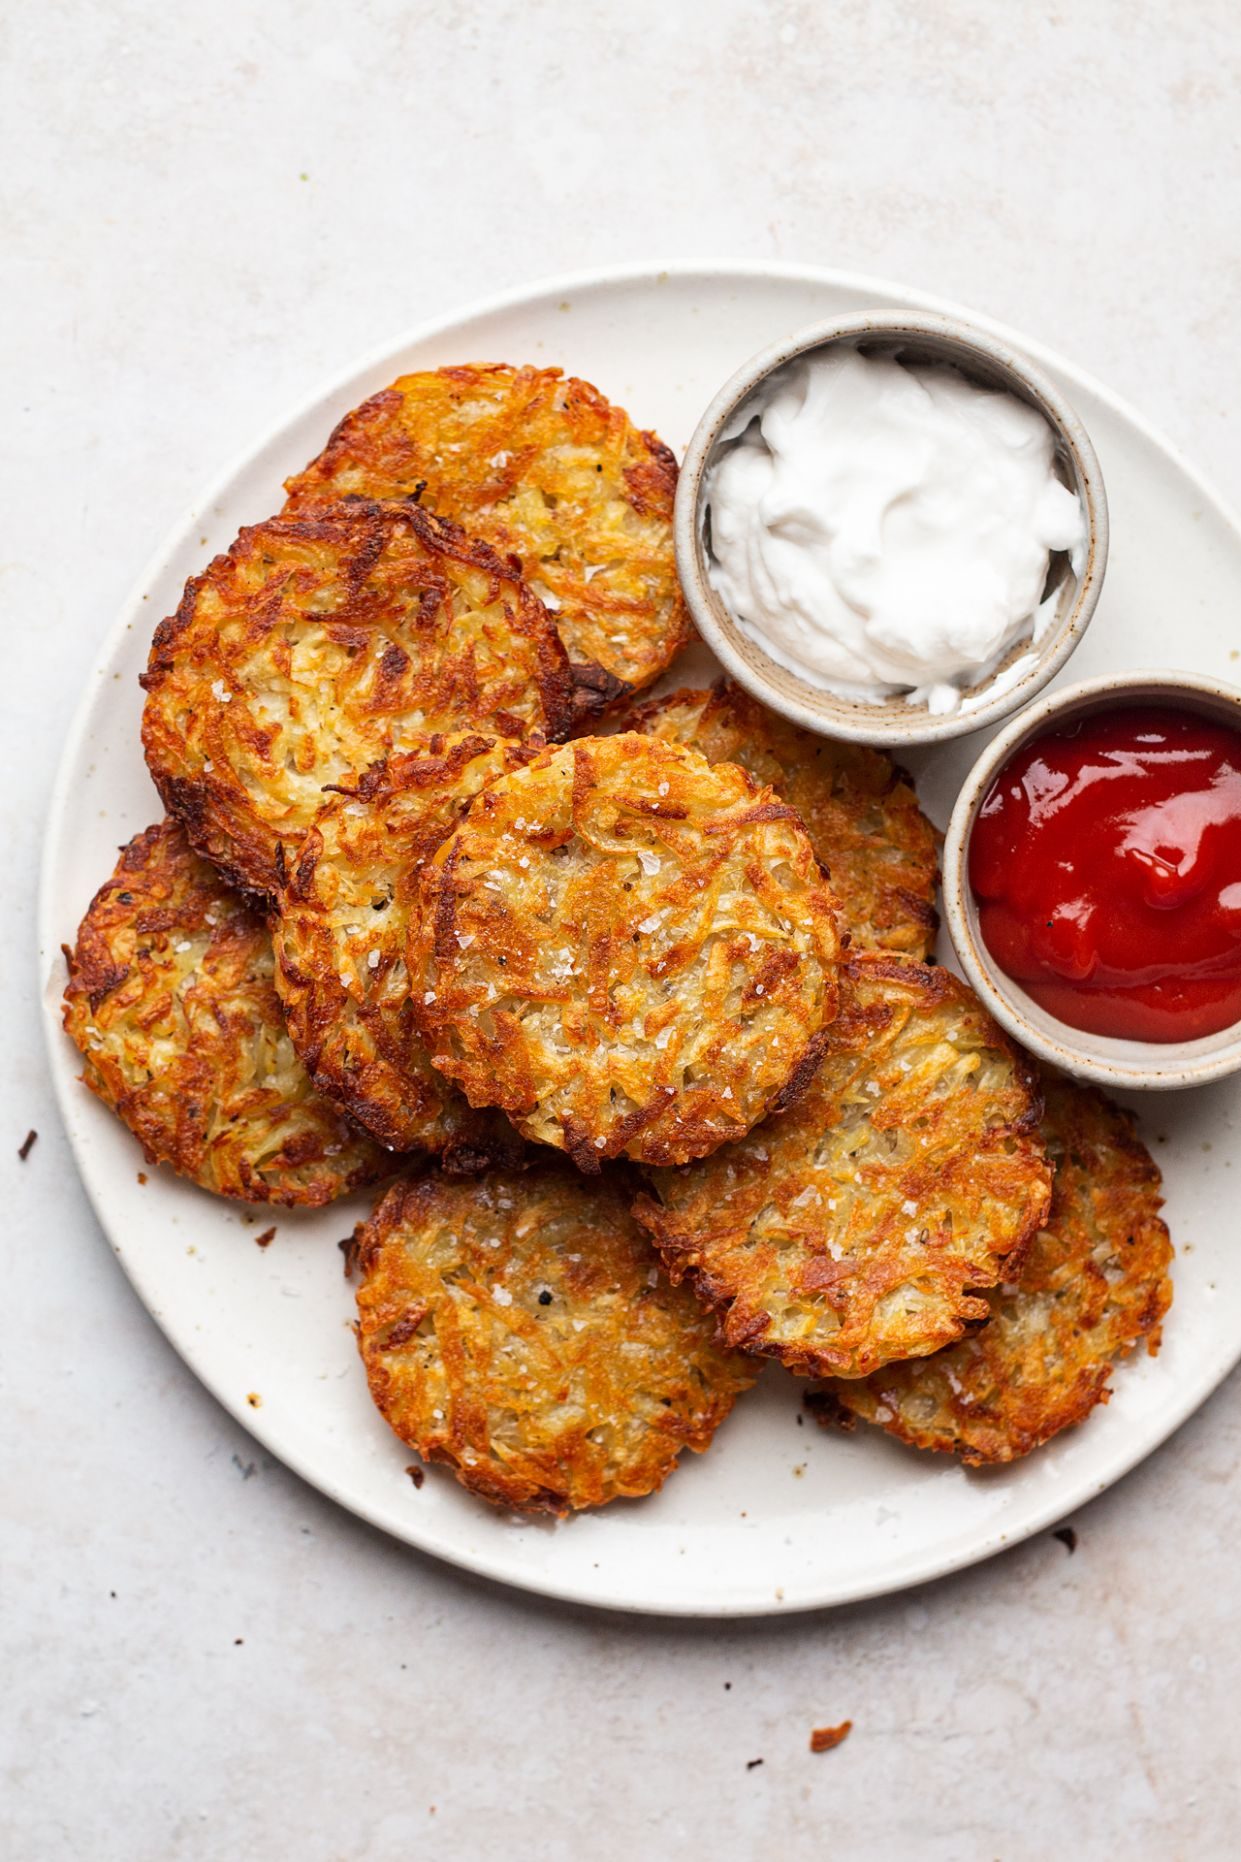 Baked vegan hash browns - Lazy Cat Kitchen